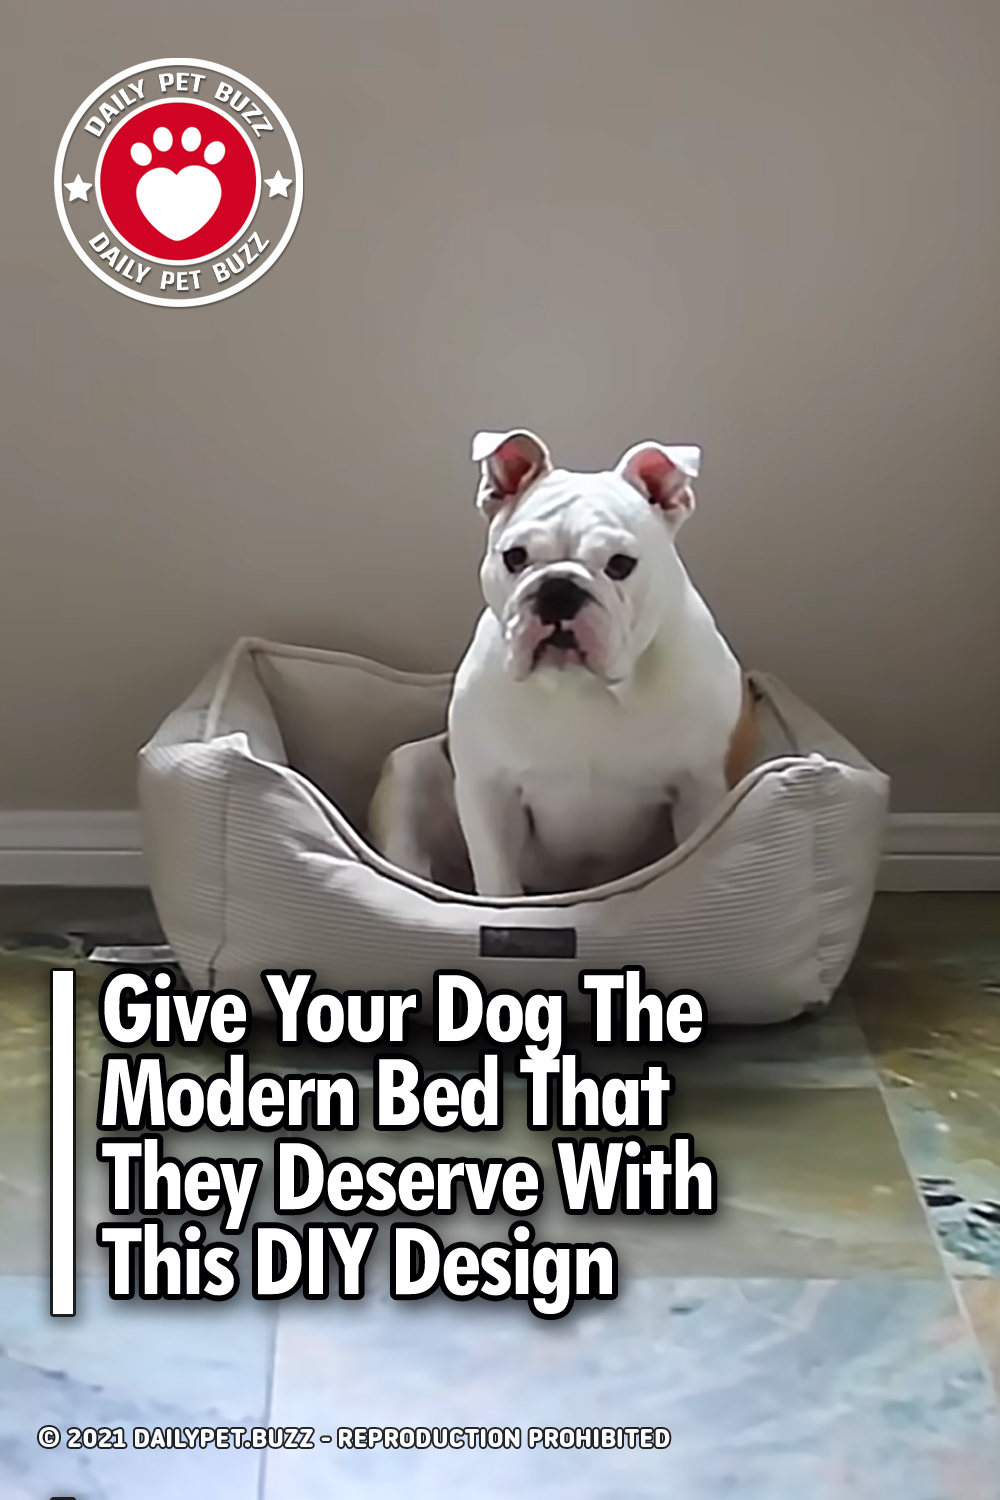 Give Your Dog The Modern Bed That They Deserve With This DIY Design